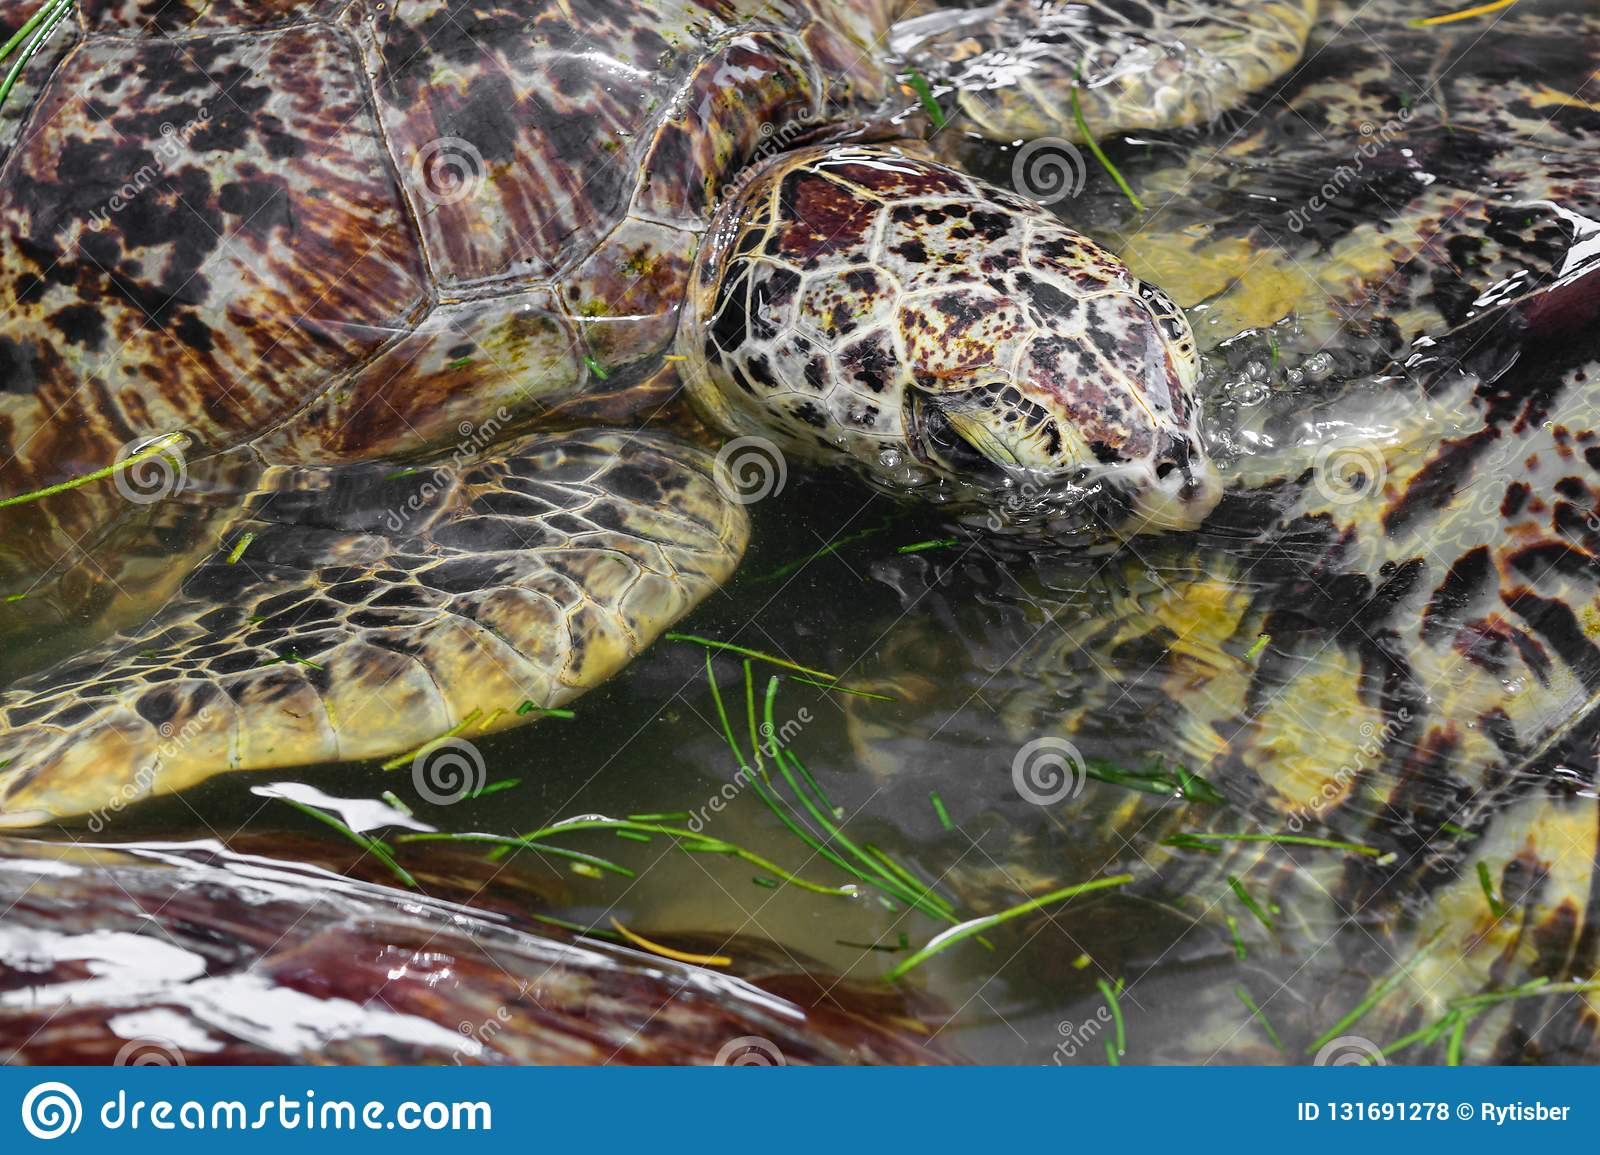 Many Sea Turtles Swimming In The Water Pond And Eating Sea